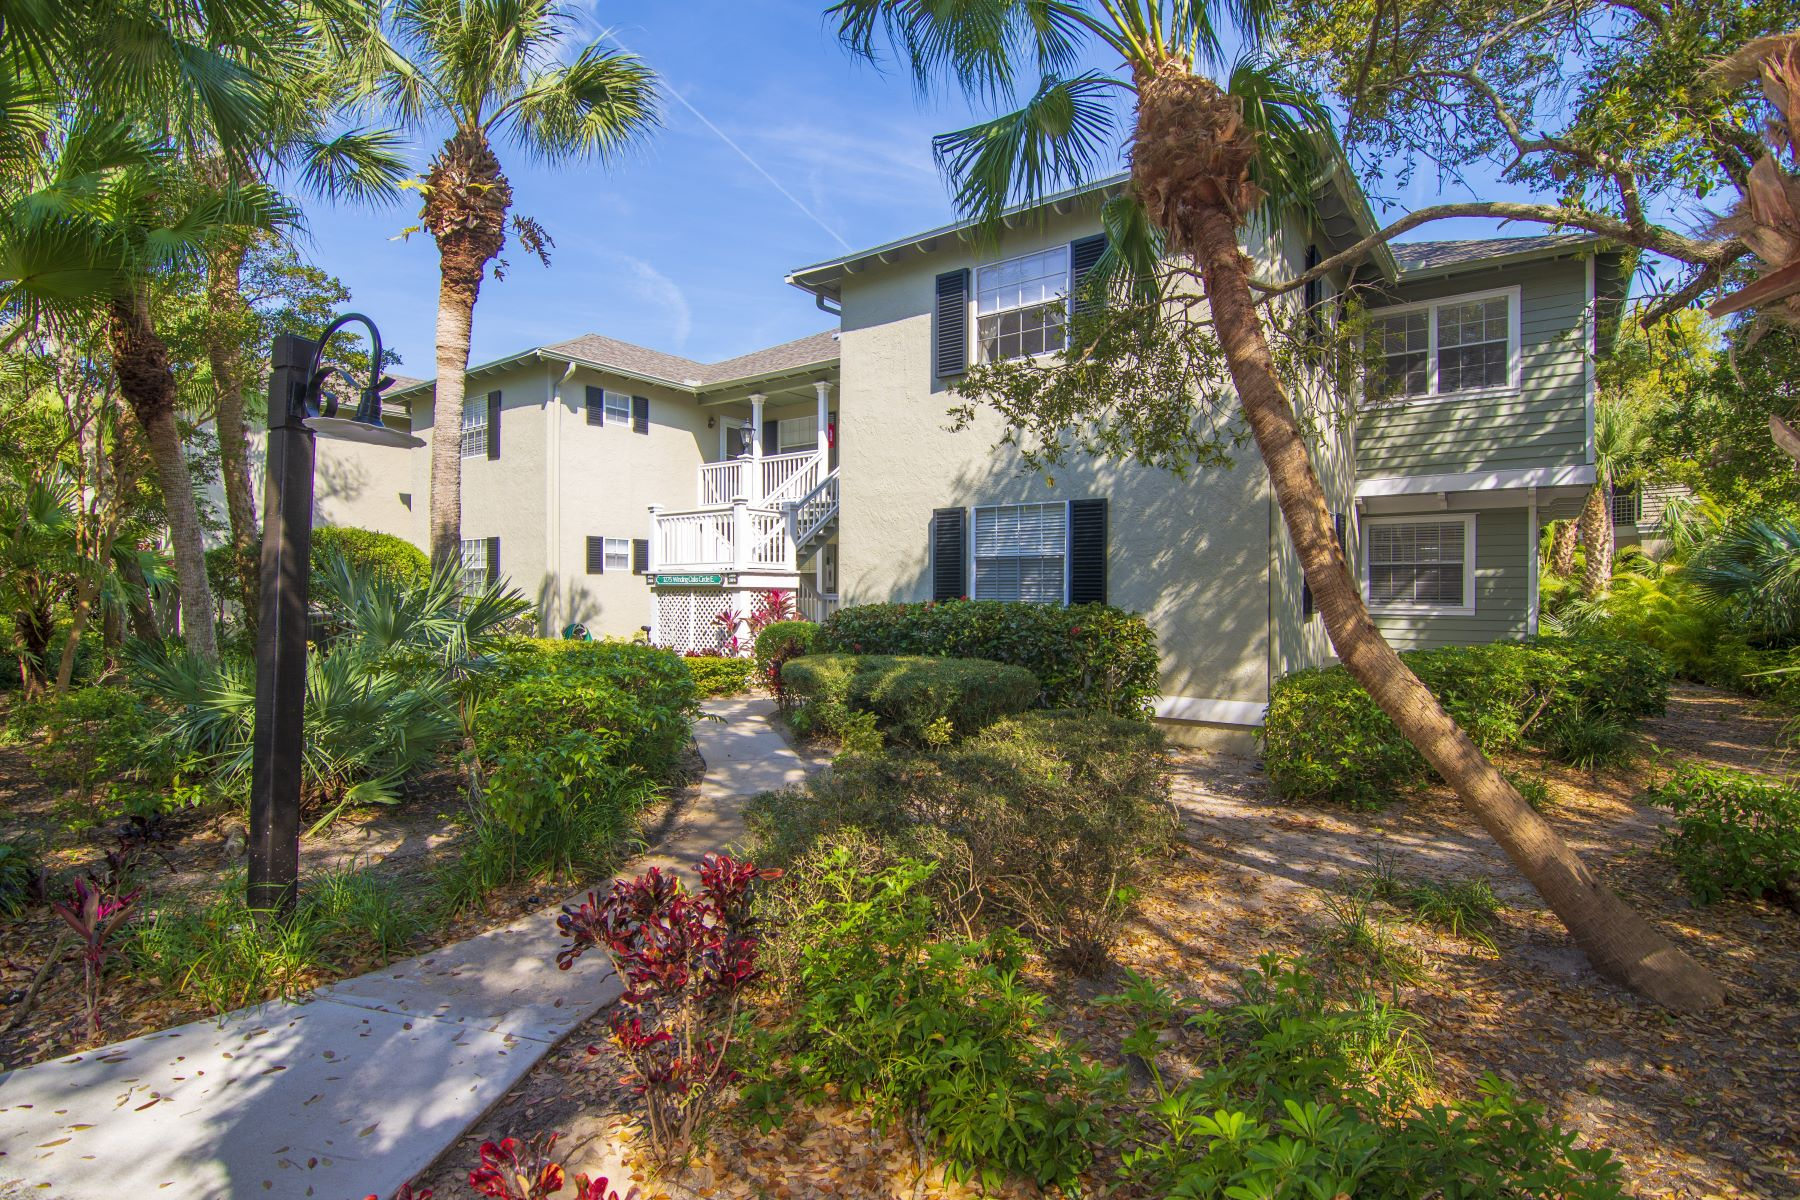 Property for Sale at 1275 Winding Oaks Circle E, 708 Vero Beach, Florida 32963 United States